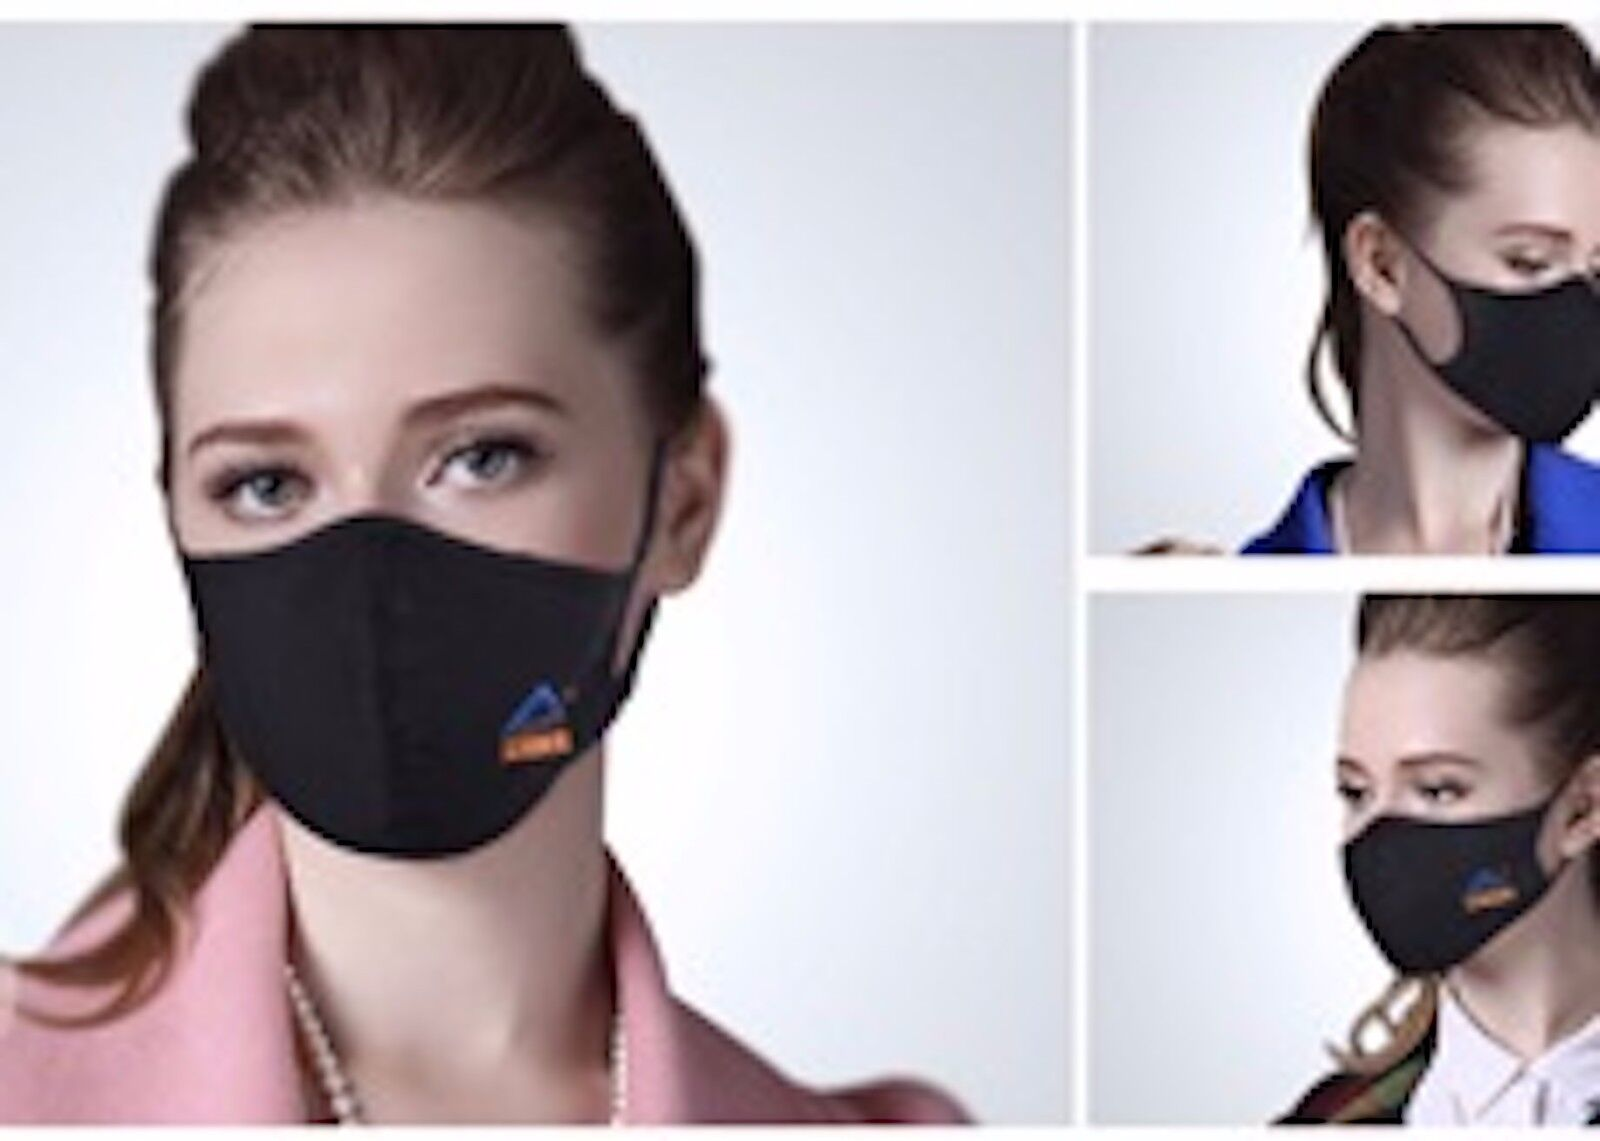 Buy fashion flu mask Belgium: nude pictures of 15